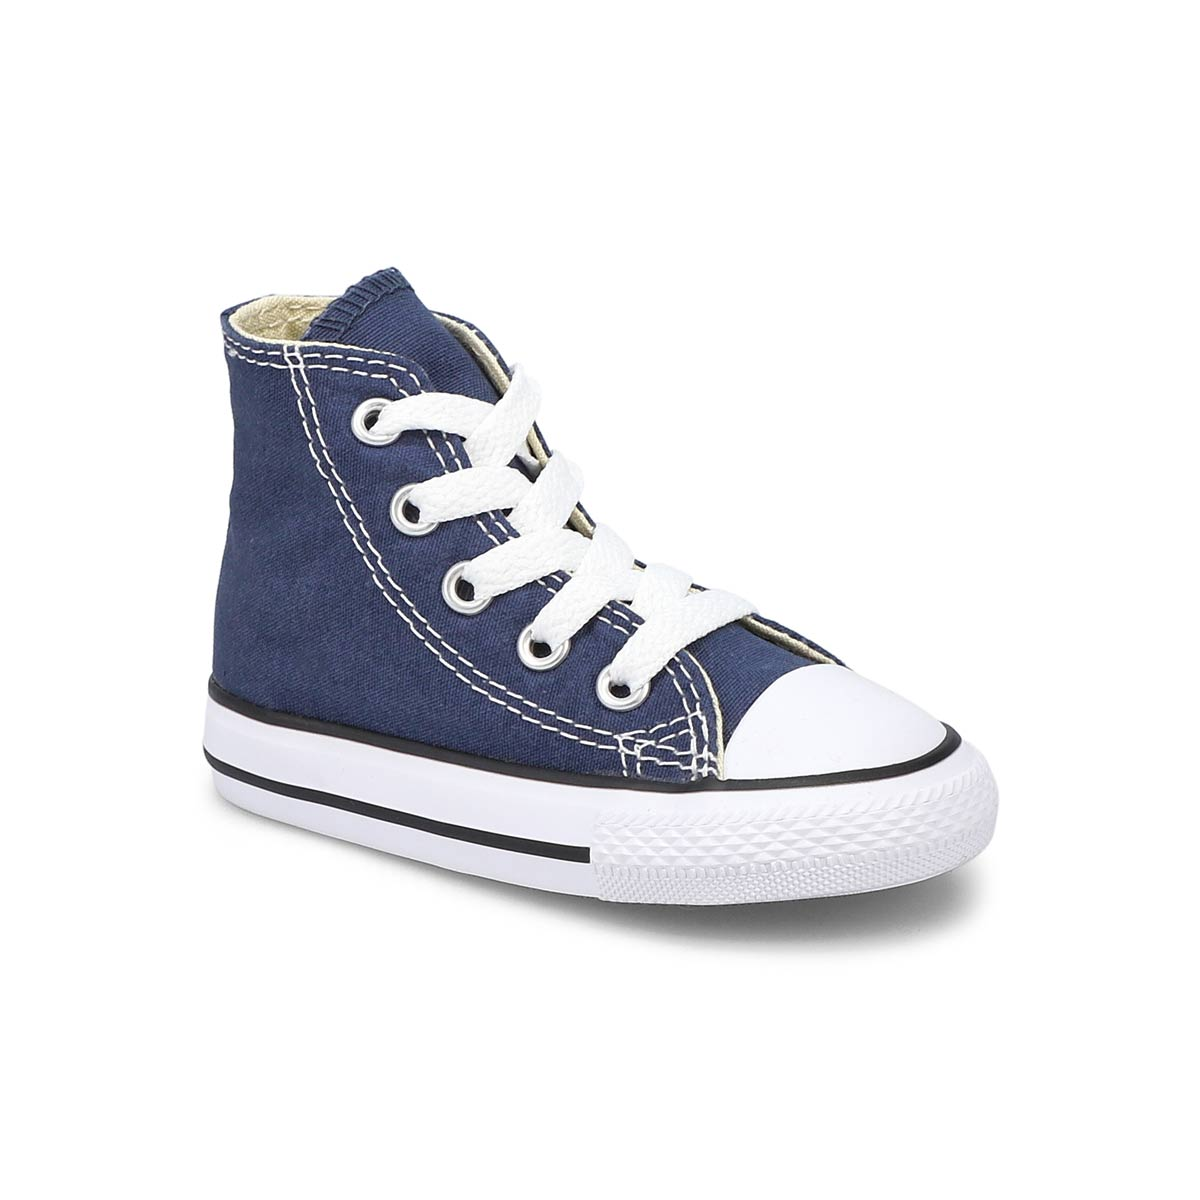 Infants' CHUCK TAYLOR ALL STAR navy sneakers